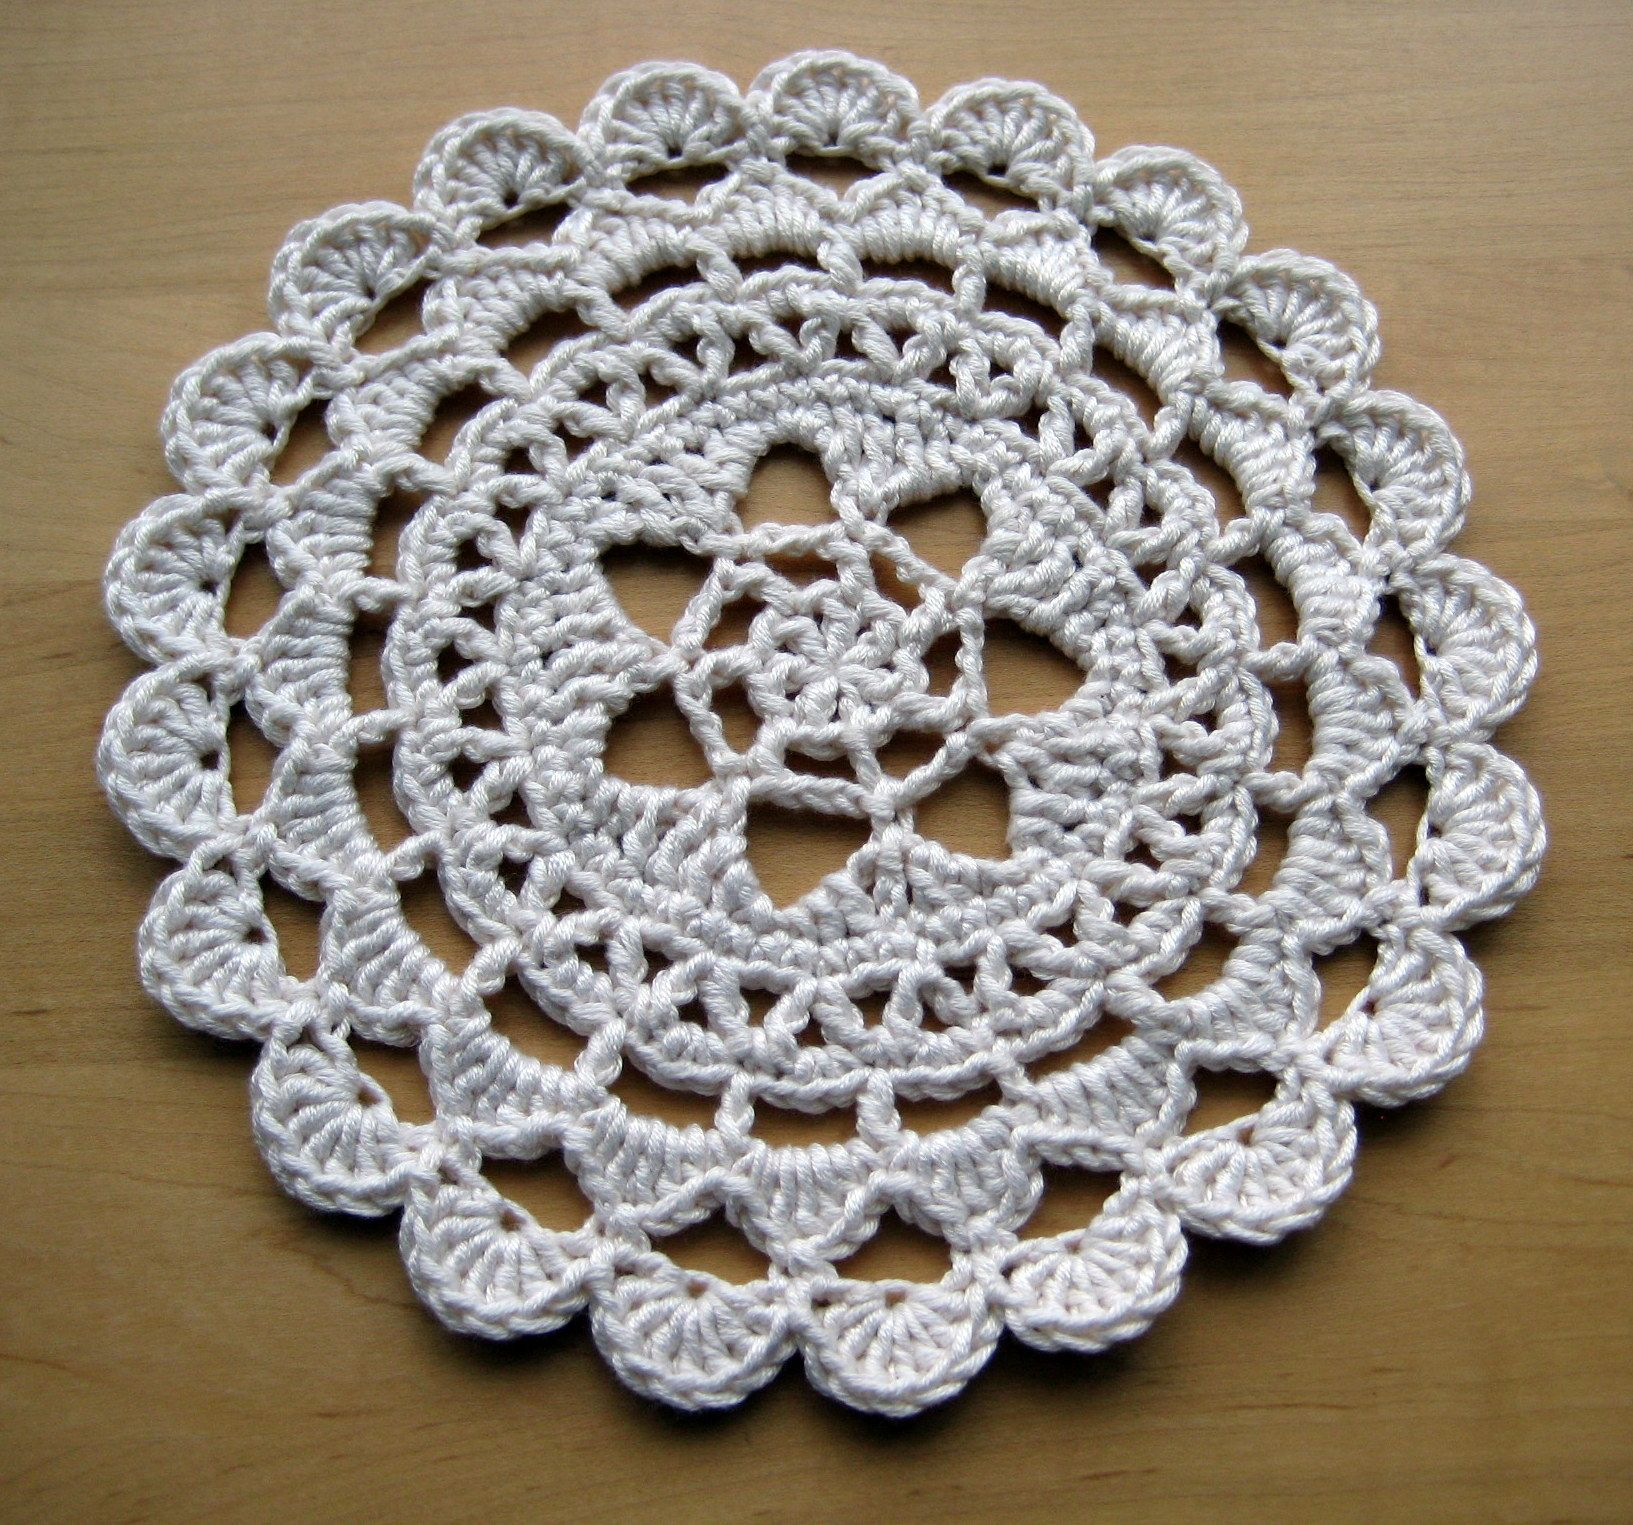 Pretty passion flower doily free pattern in dk weight yarn i pretty passion flower doily free pattern in dk weight yarn i want to make bankloansurffo Images